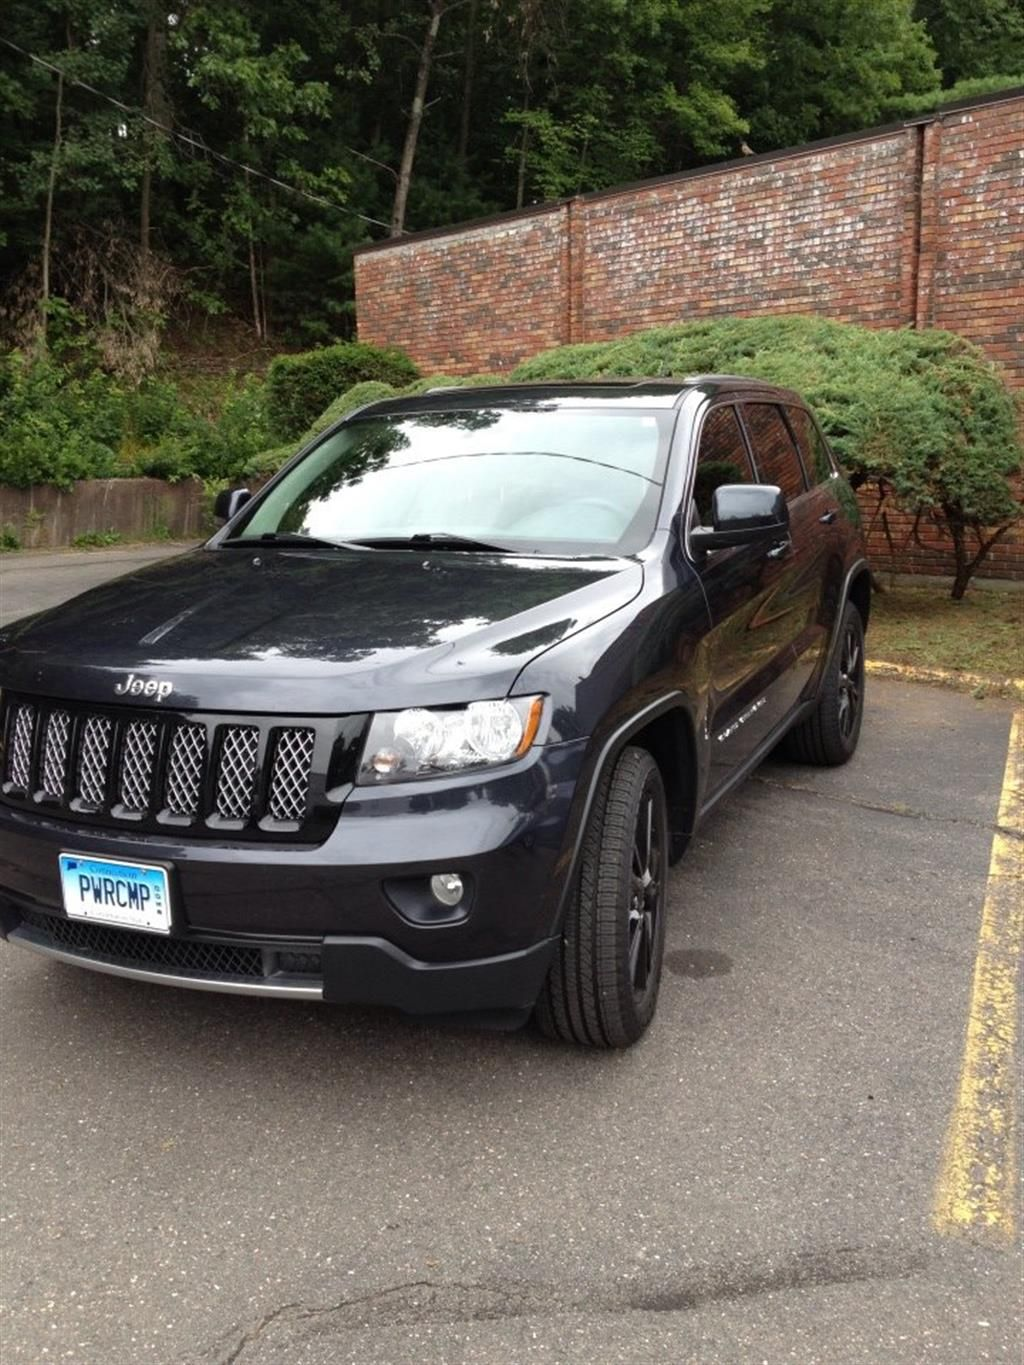 Jeep Cherokee Blackout : cherokee, blackout, Grand, Cherokee, Blackout, Edition, Audio, Photo#, 139448, Cherokee,, Jeep,